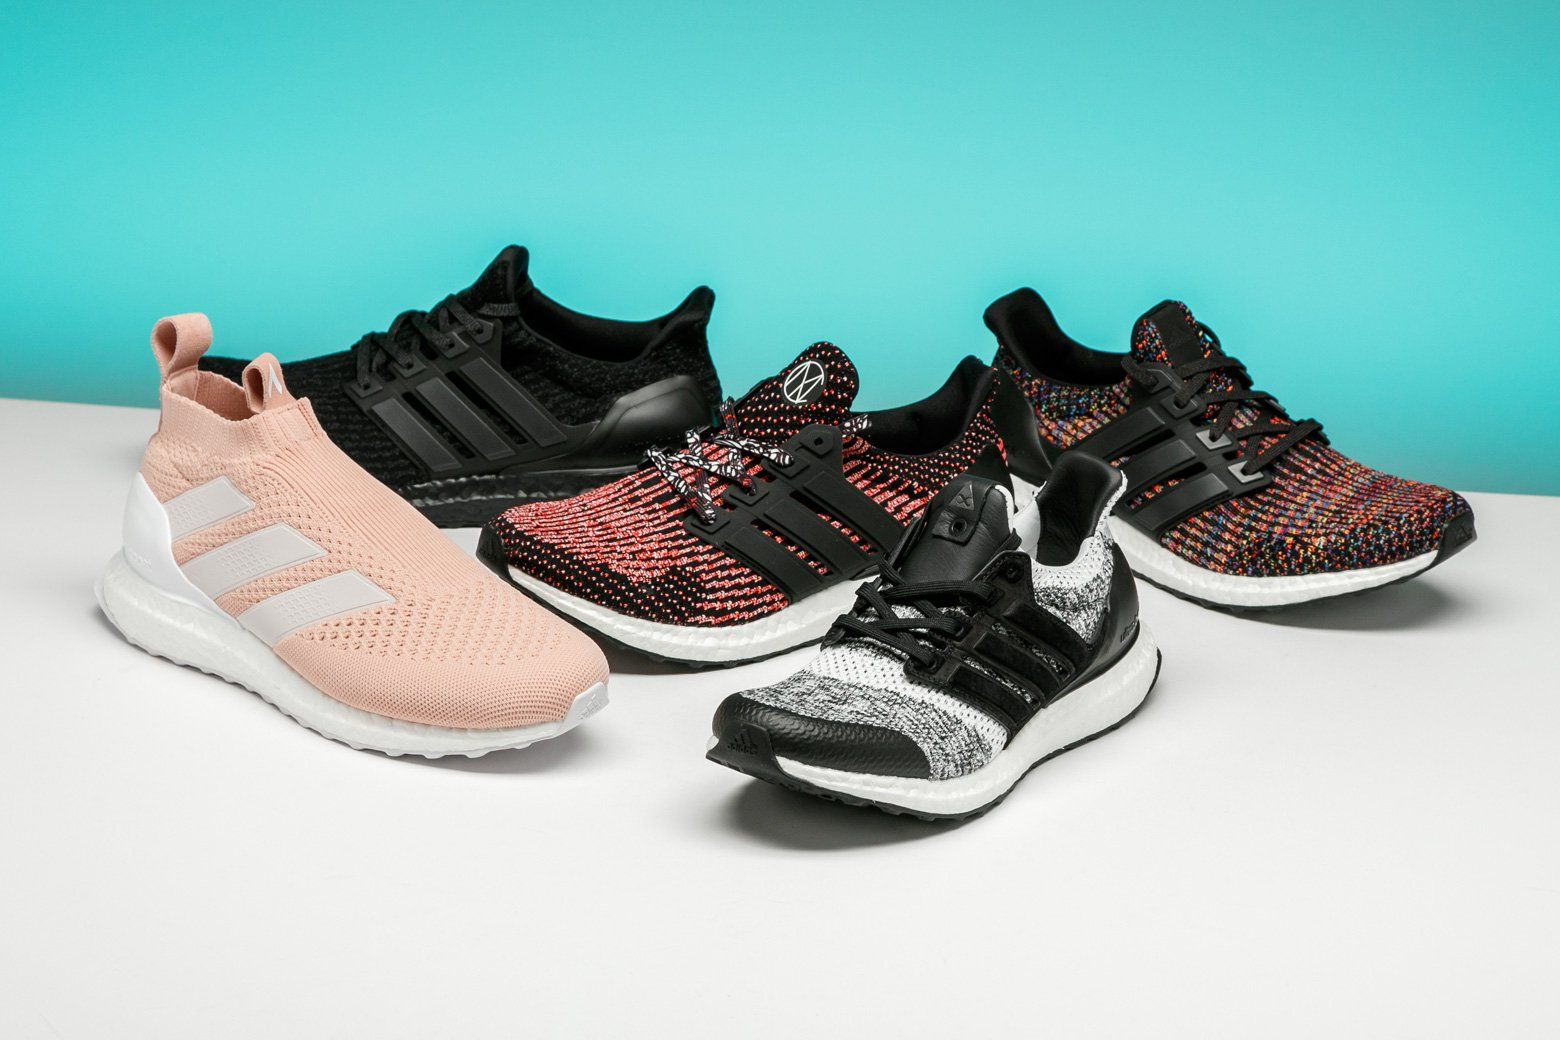 b63fa81af67c8 Here s SG s comprehensive ranking of the best 2017 Ultra Boost releases so  far.